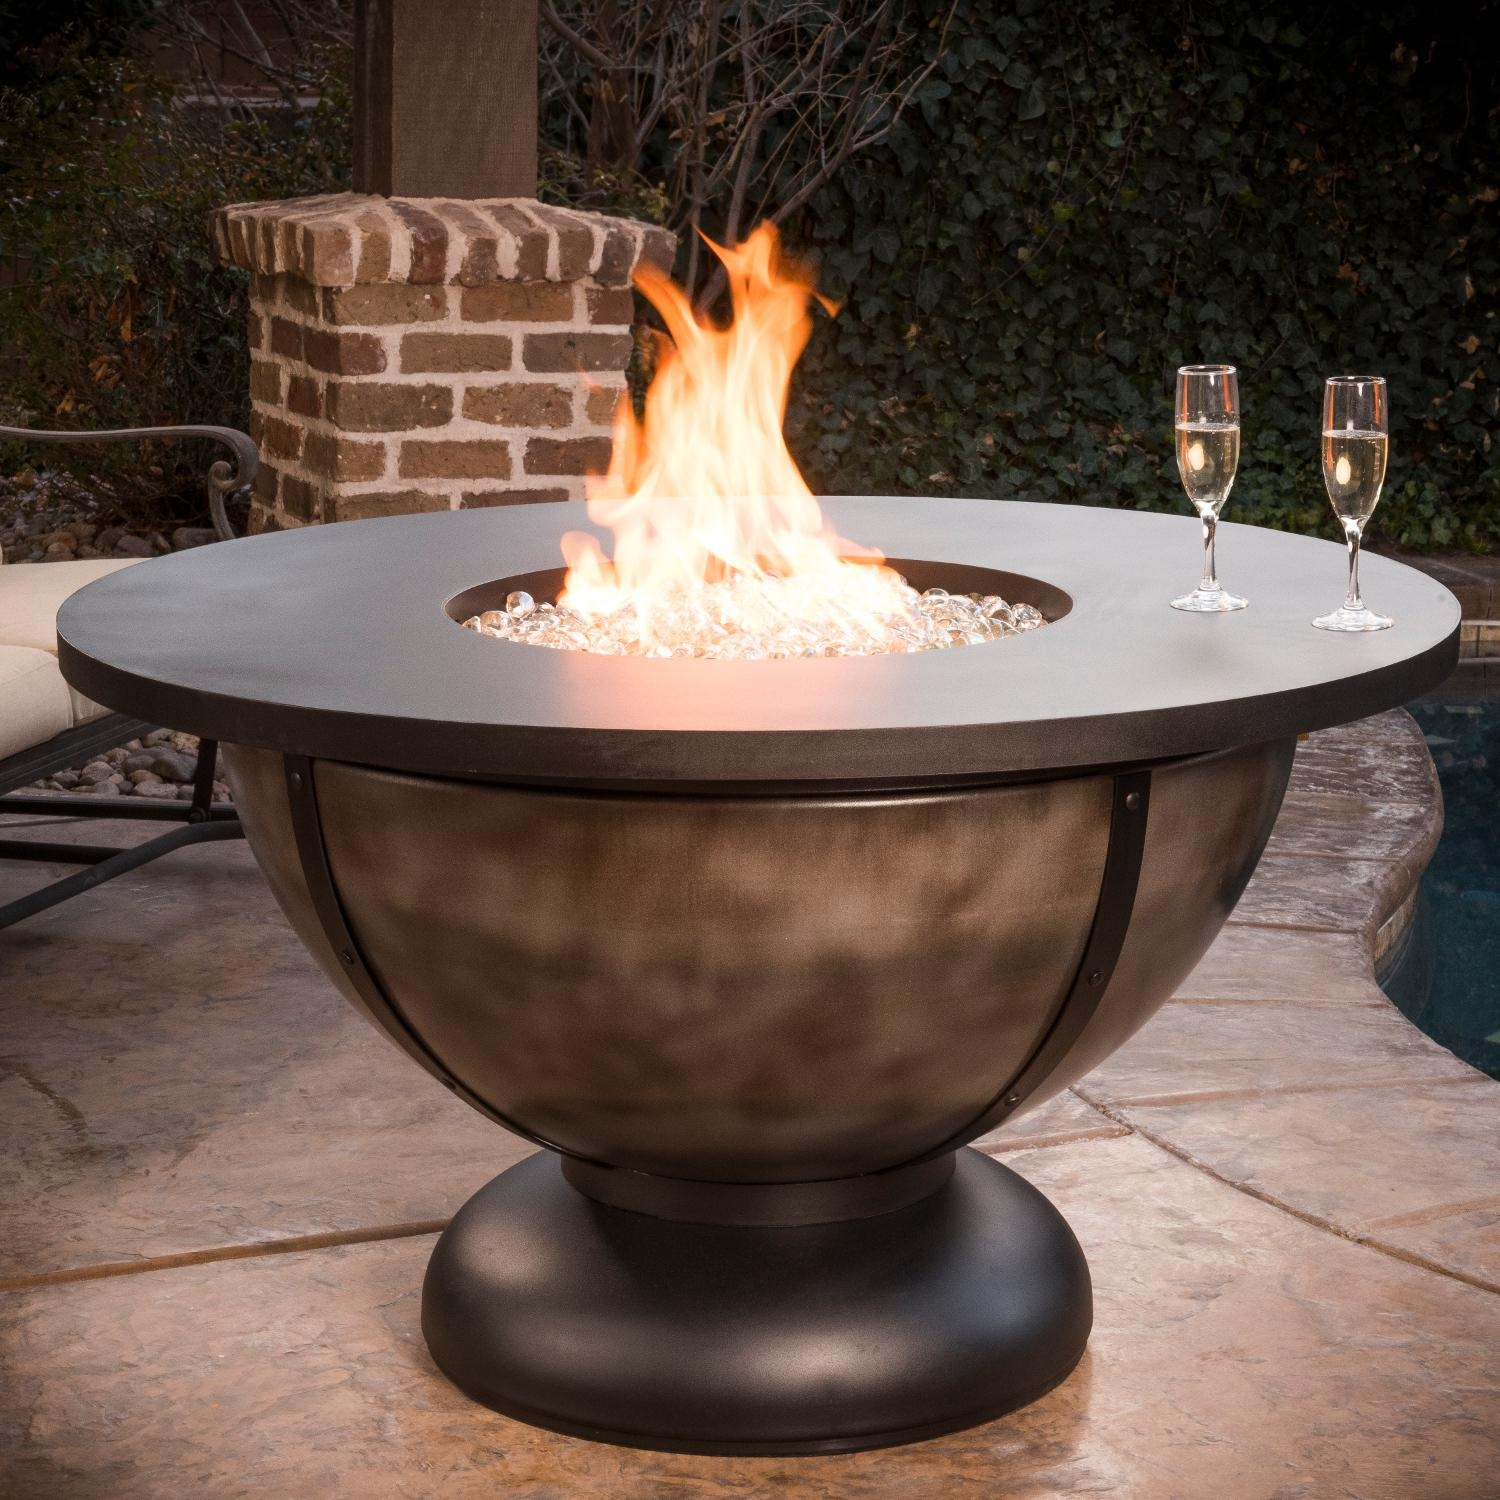 CC Products Onyx Bowl 48 Inch Round Propane Gas Fire Table